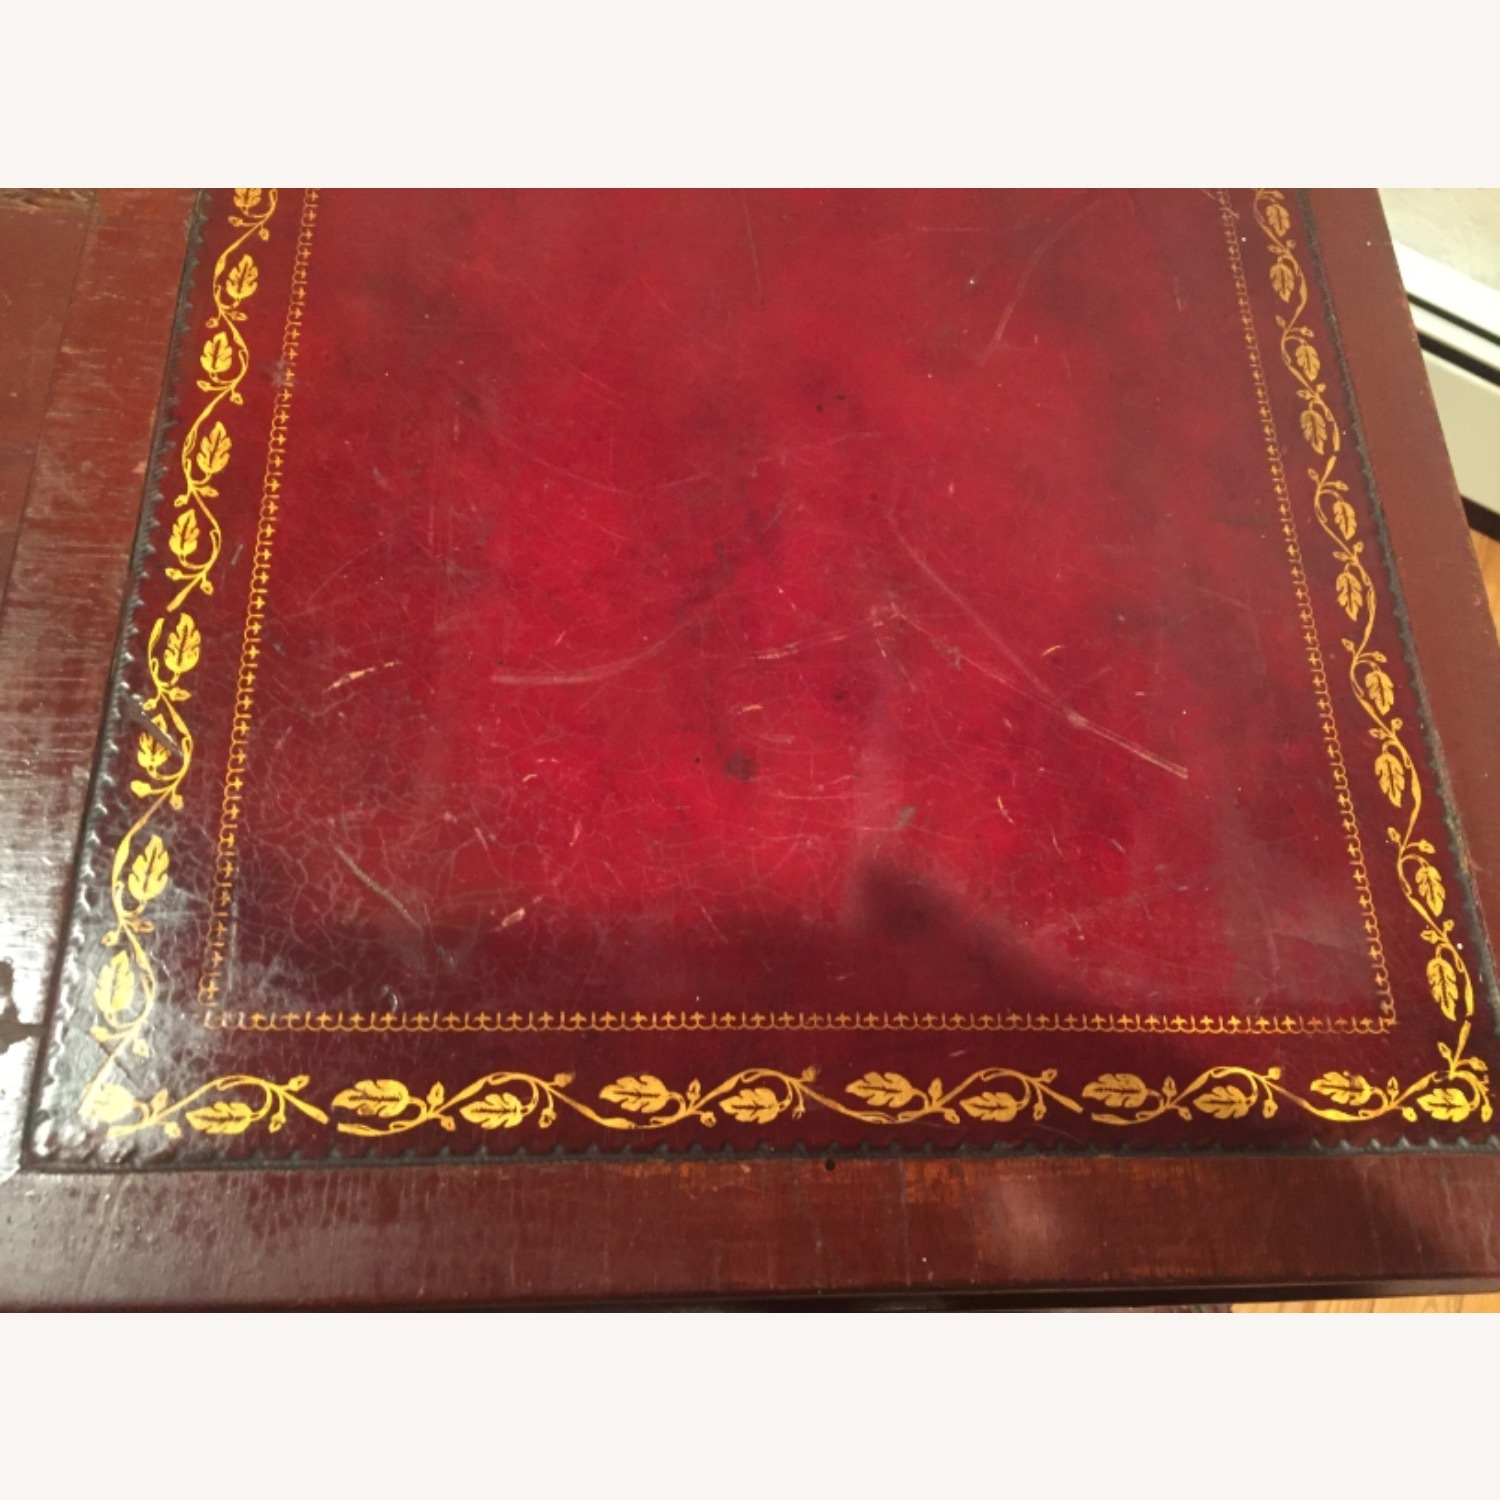 Antique Mahogany/Leather Side Table - image-5